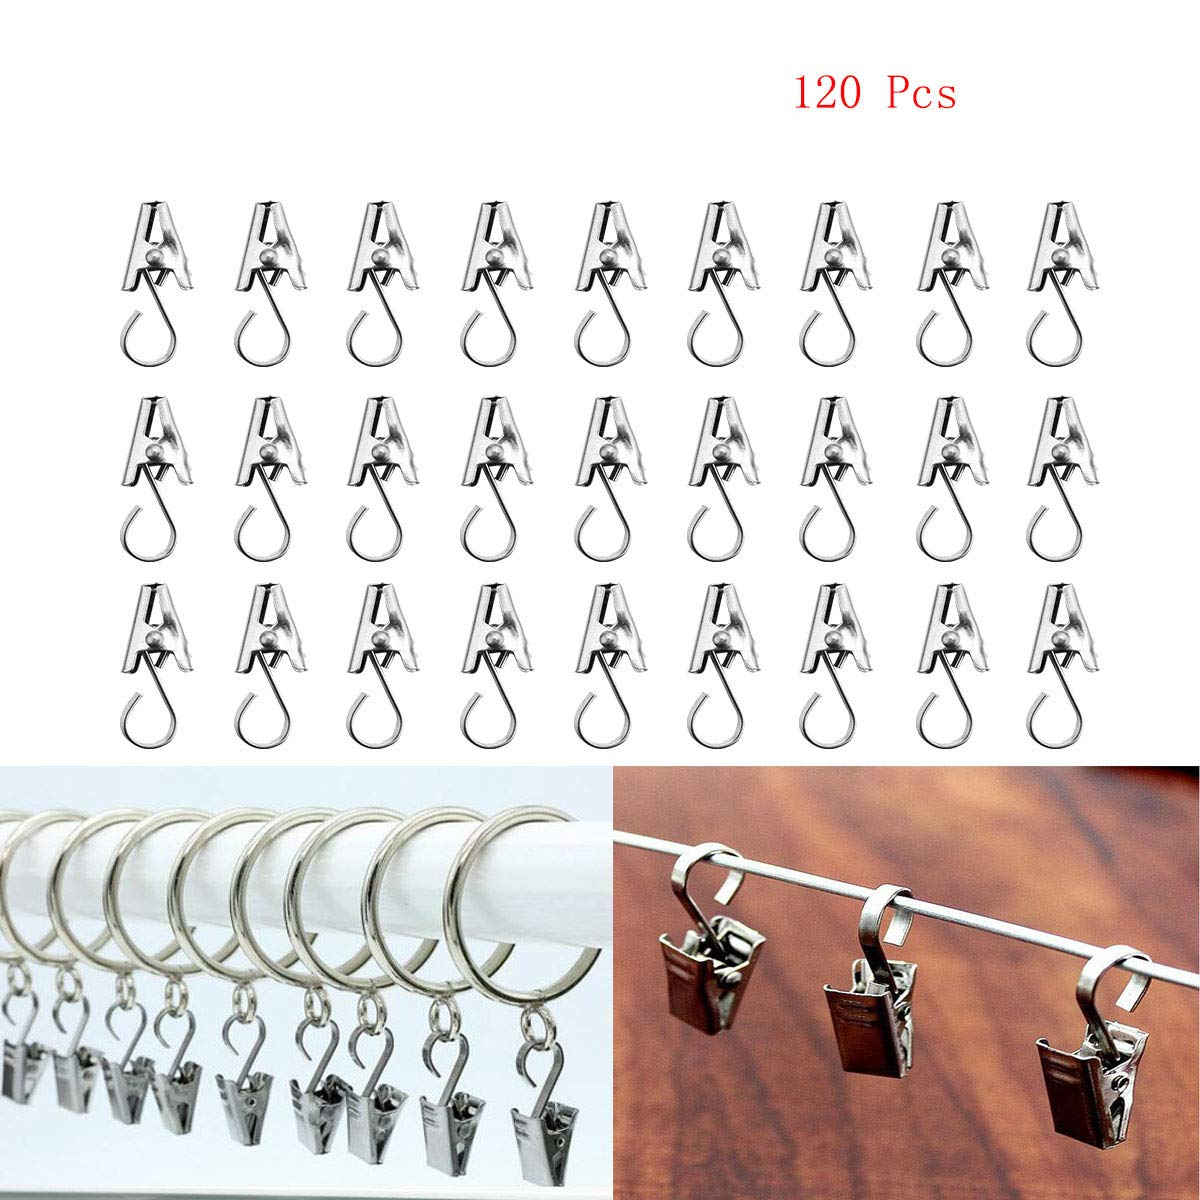 120 Pcs Stainless Steel Heavy-Duty Shower Curtain Clip Hook String Party Lights Hanger Wire Holder Photos, Bedroom, Bathroom, Home Decoration, Art Craft Display